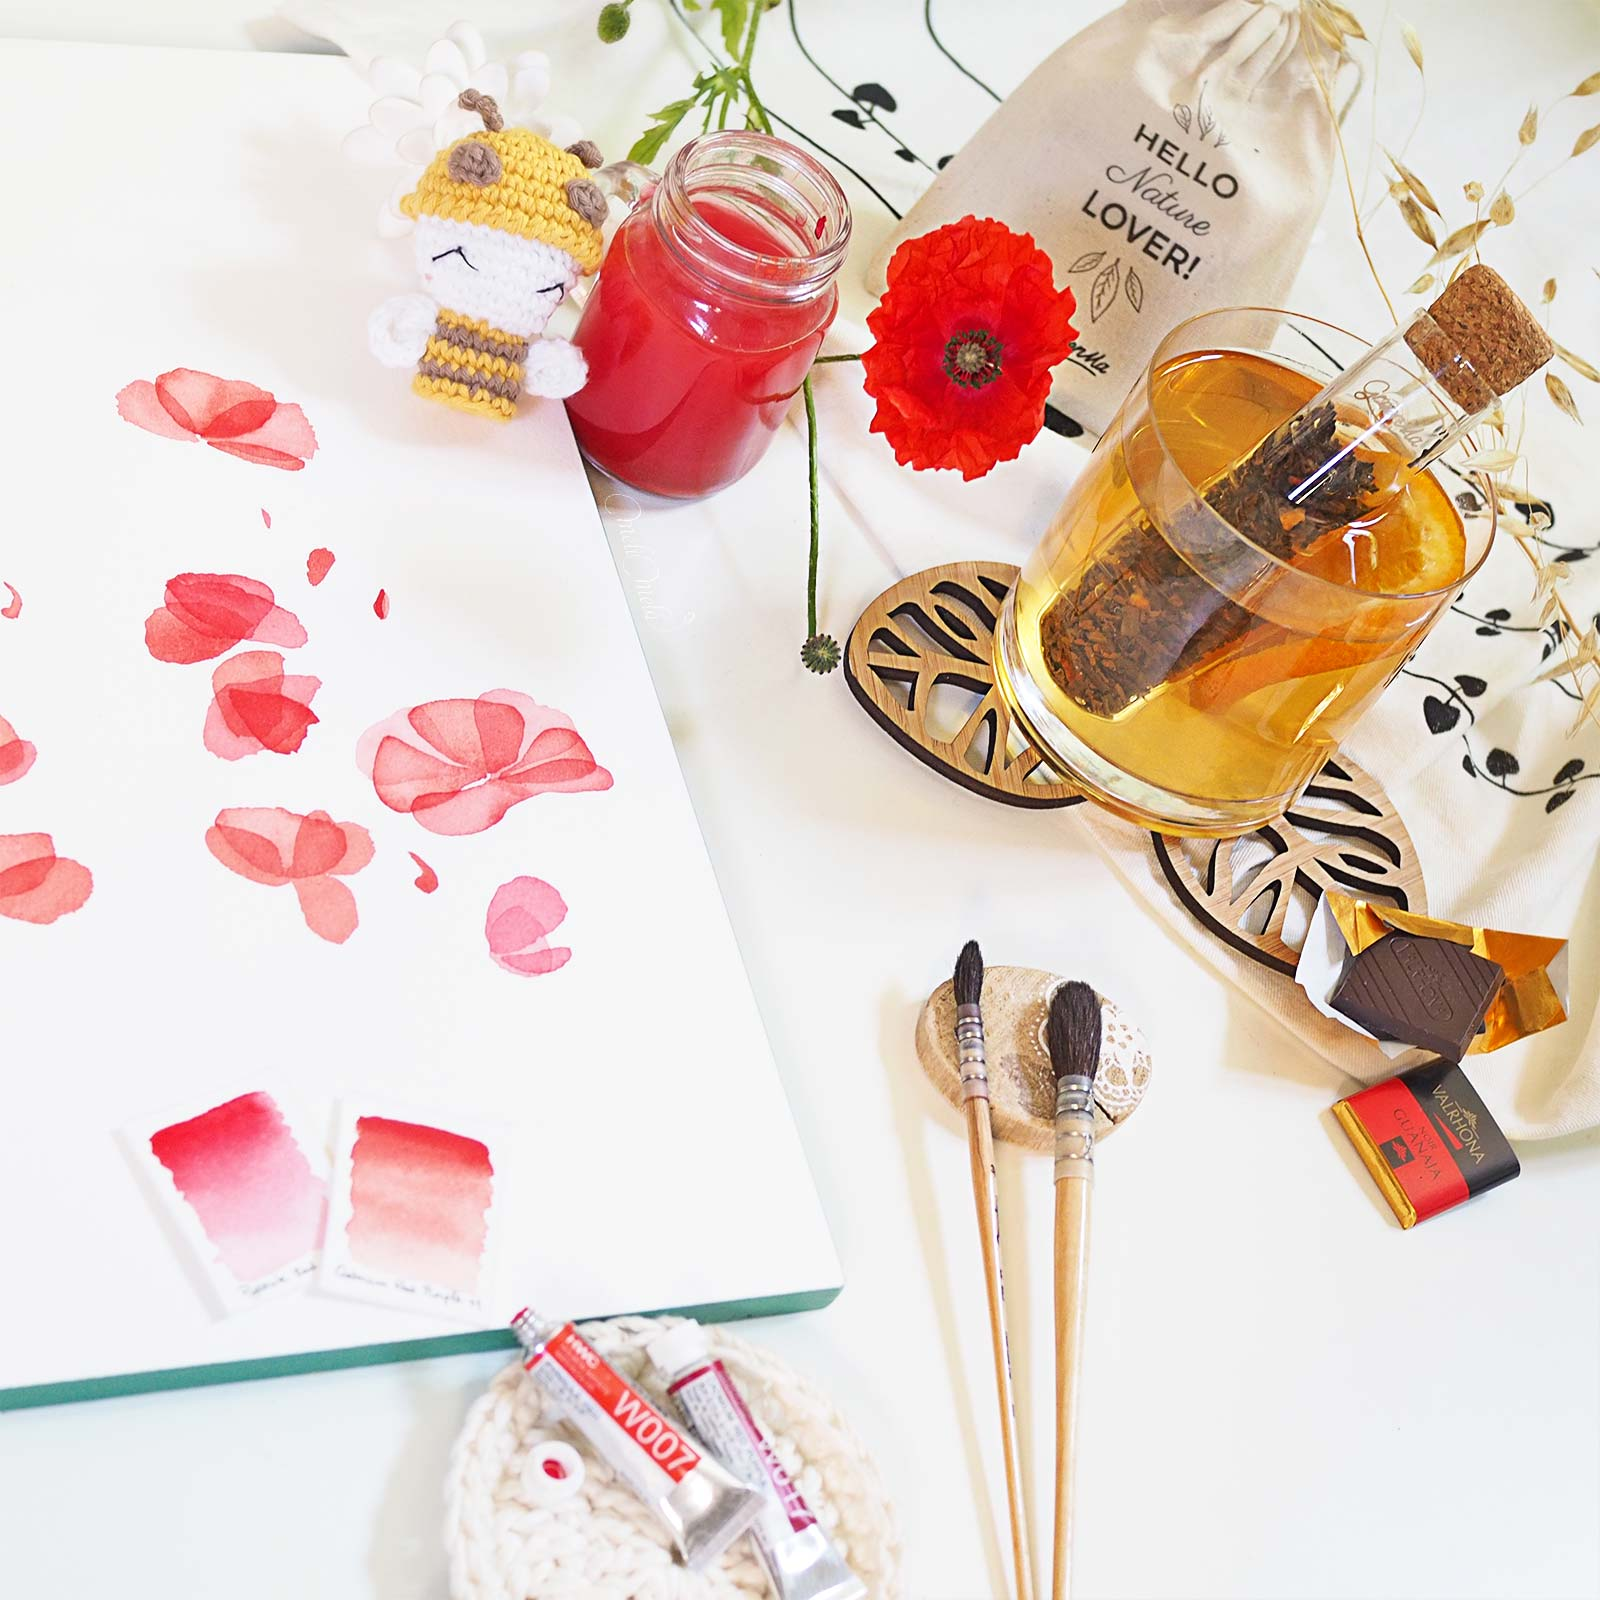 teatime-melimelothe-aquarelle-coquelicot-the-froid-greenma-france-laboutiquedemelimelo